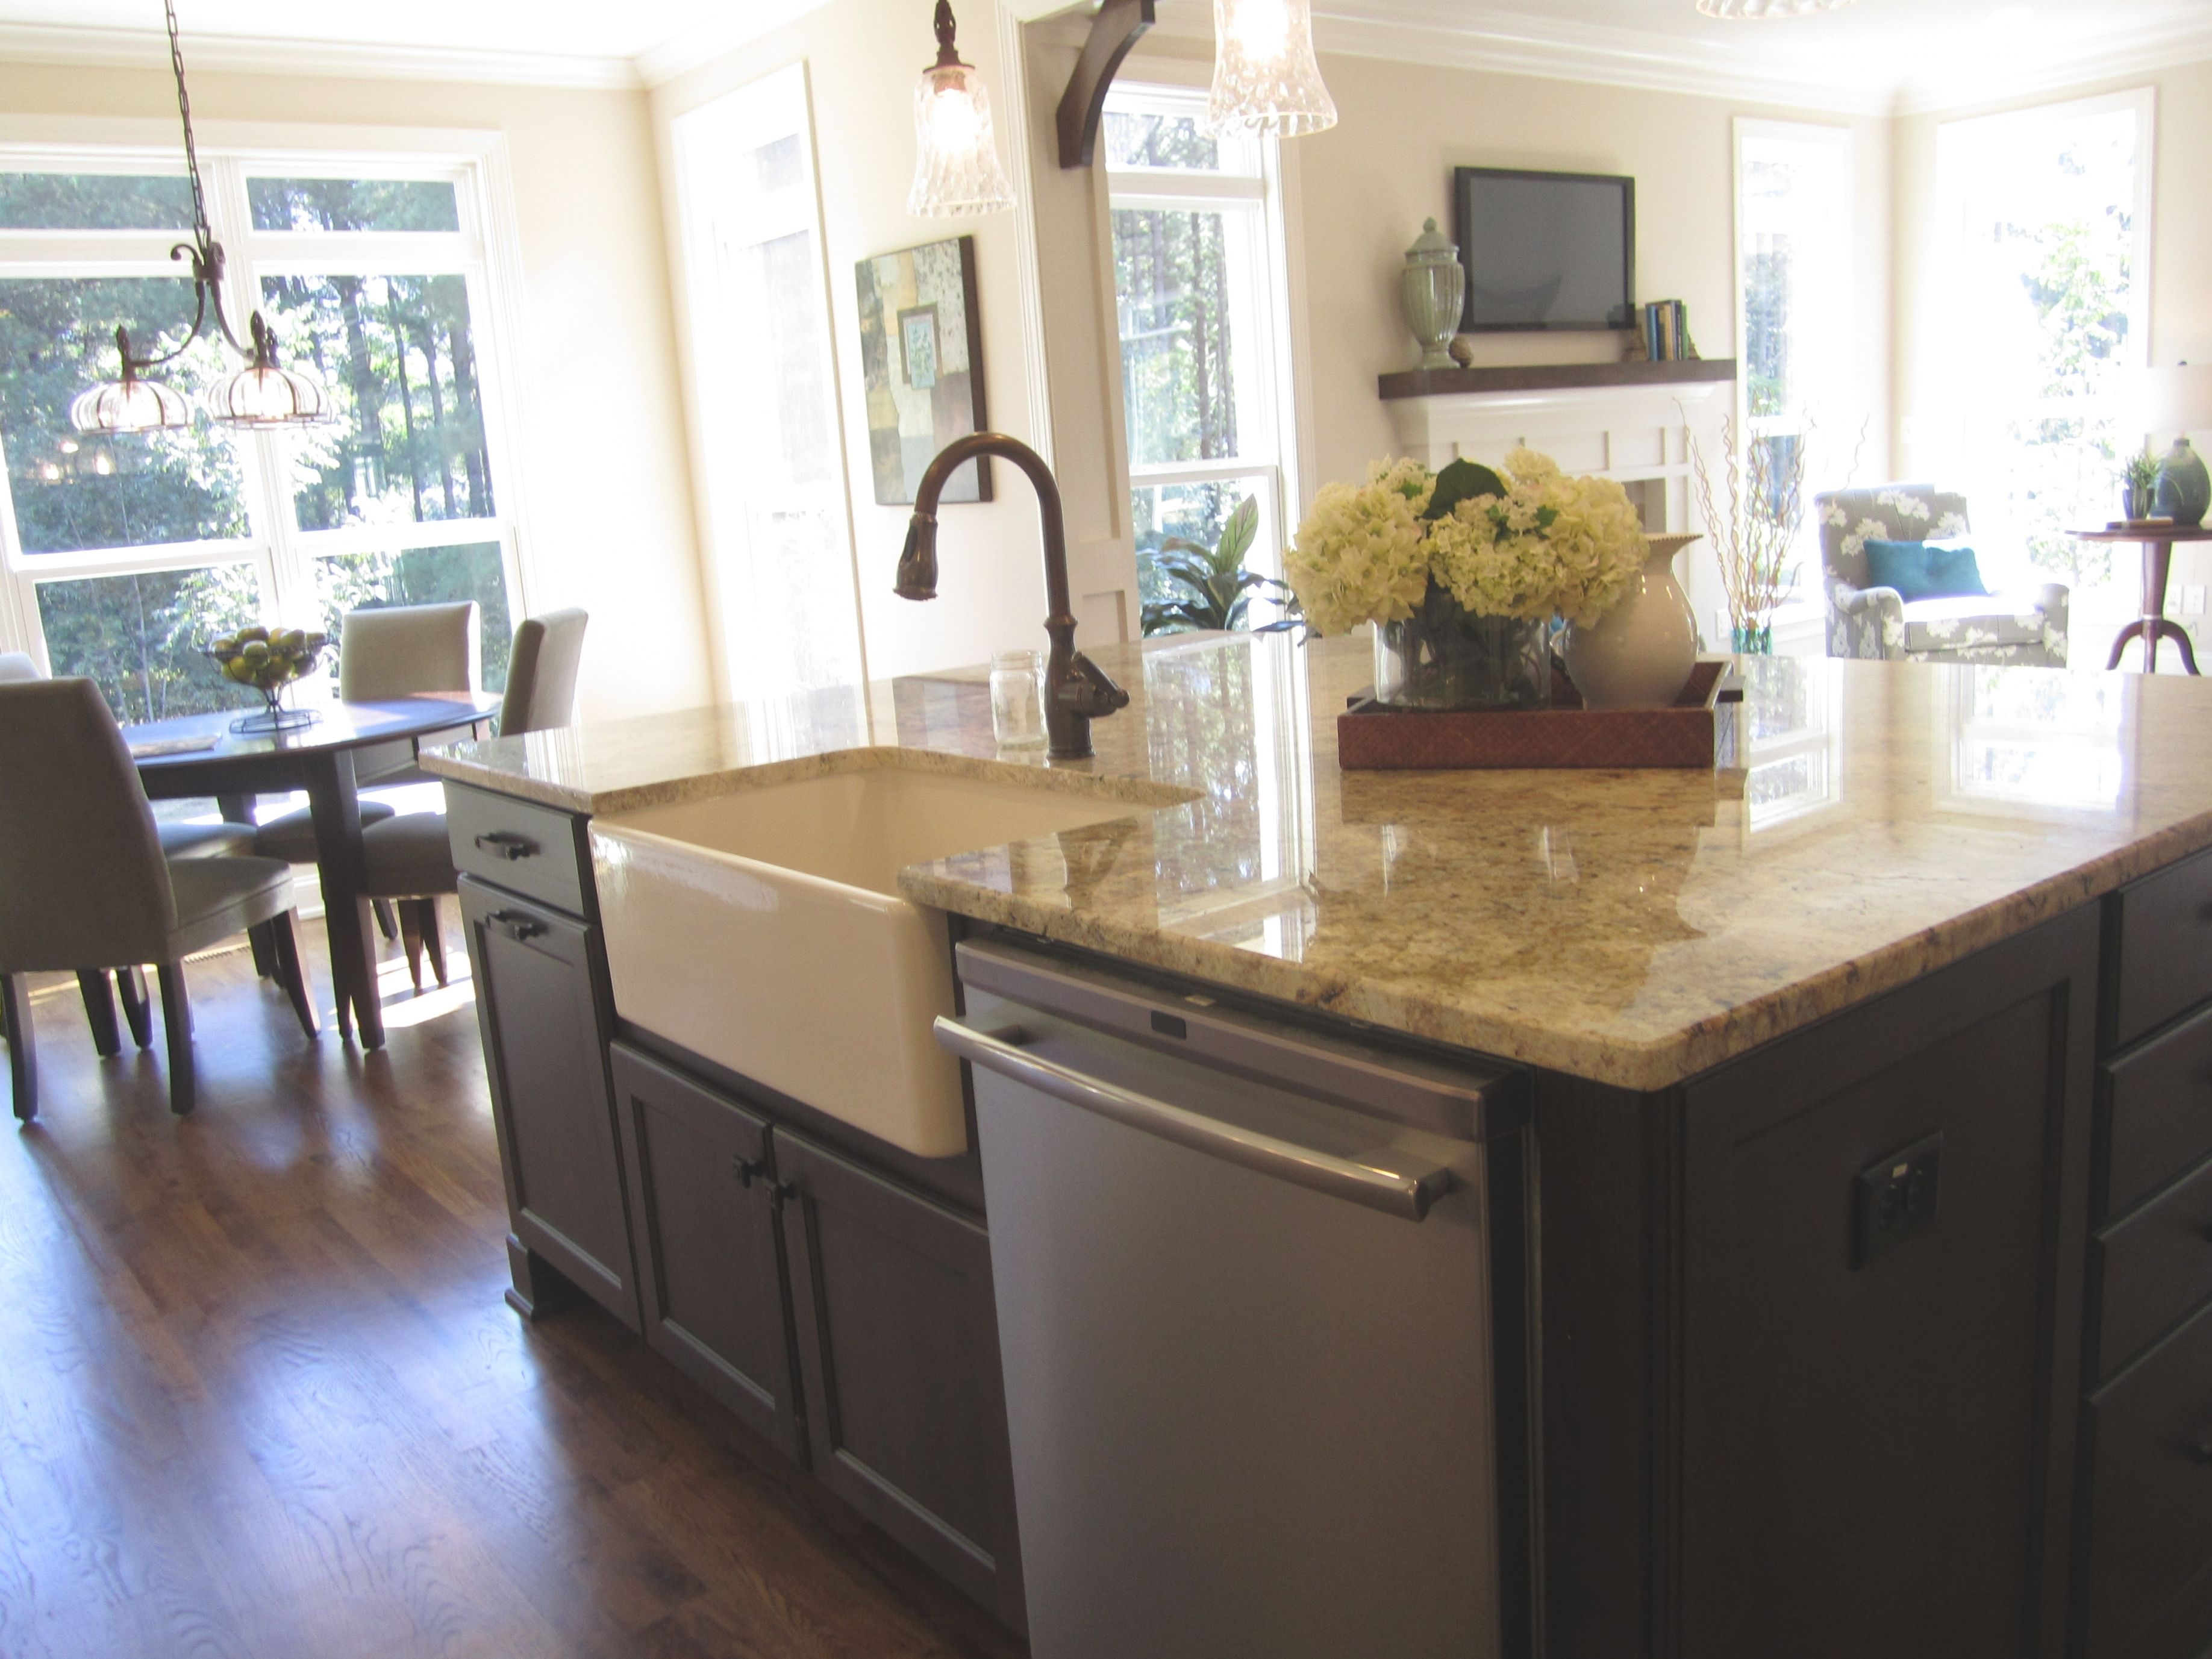 How To Decorate Kitchen Island With Sink https//festivalmontmelas ...